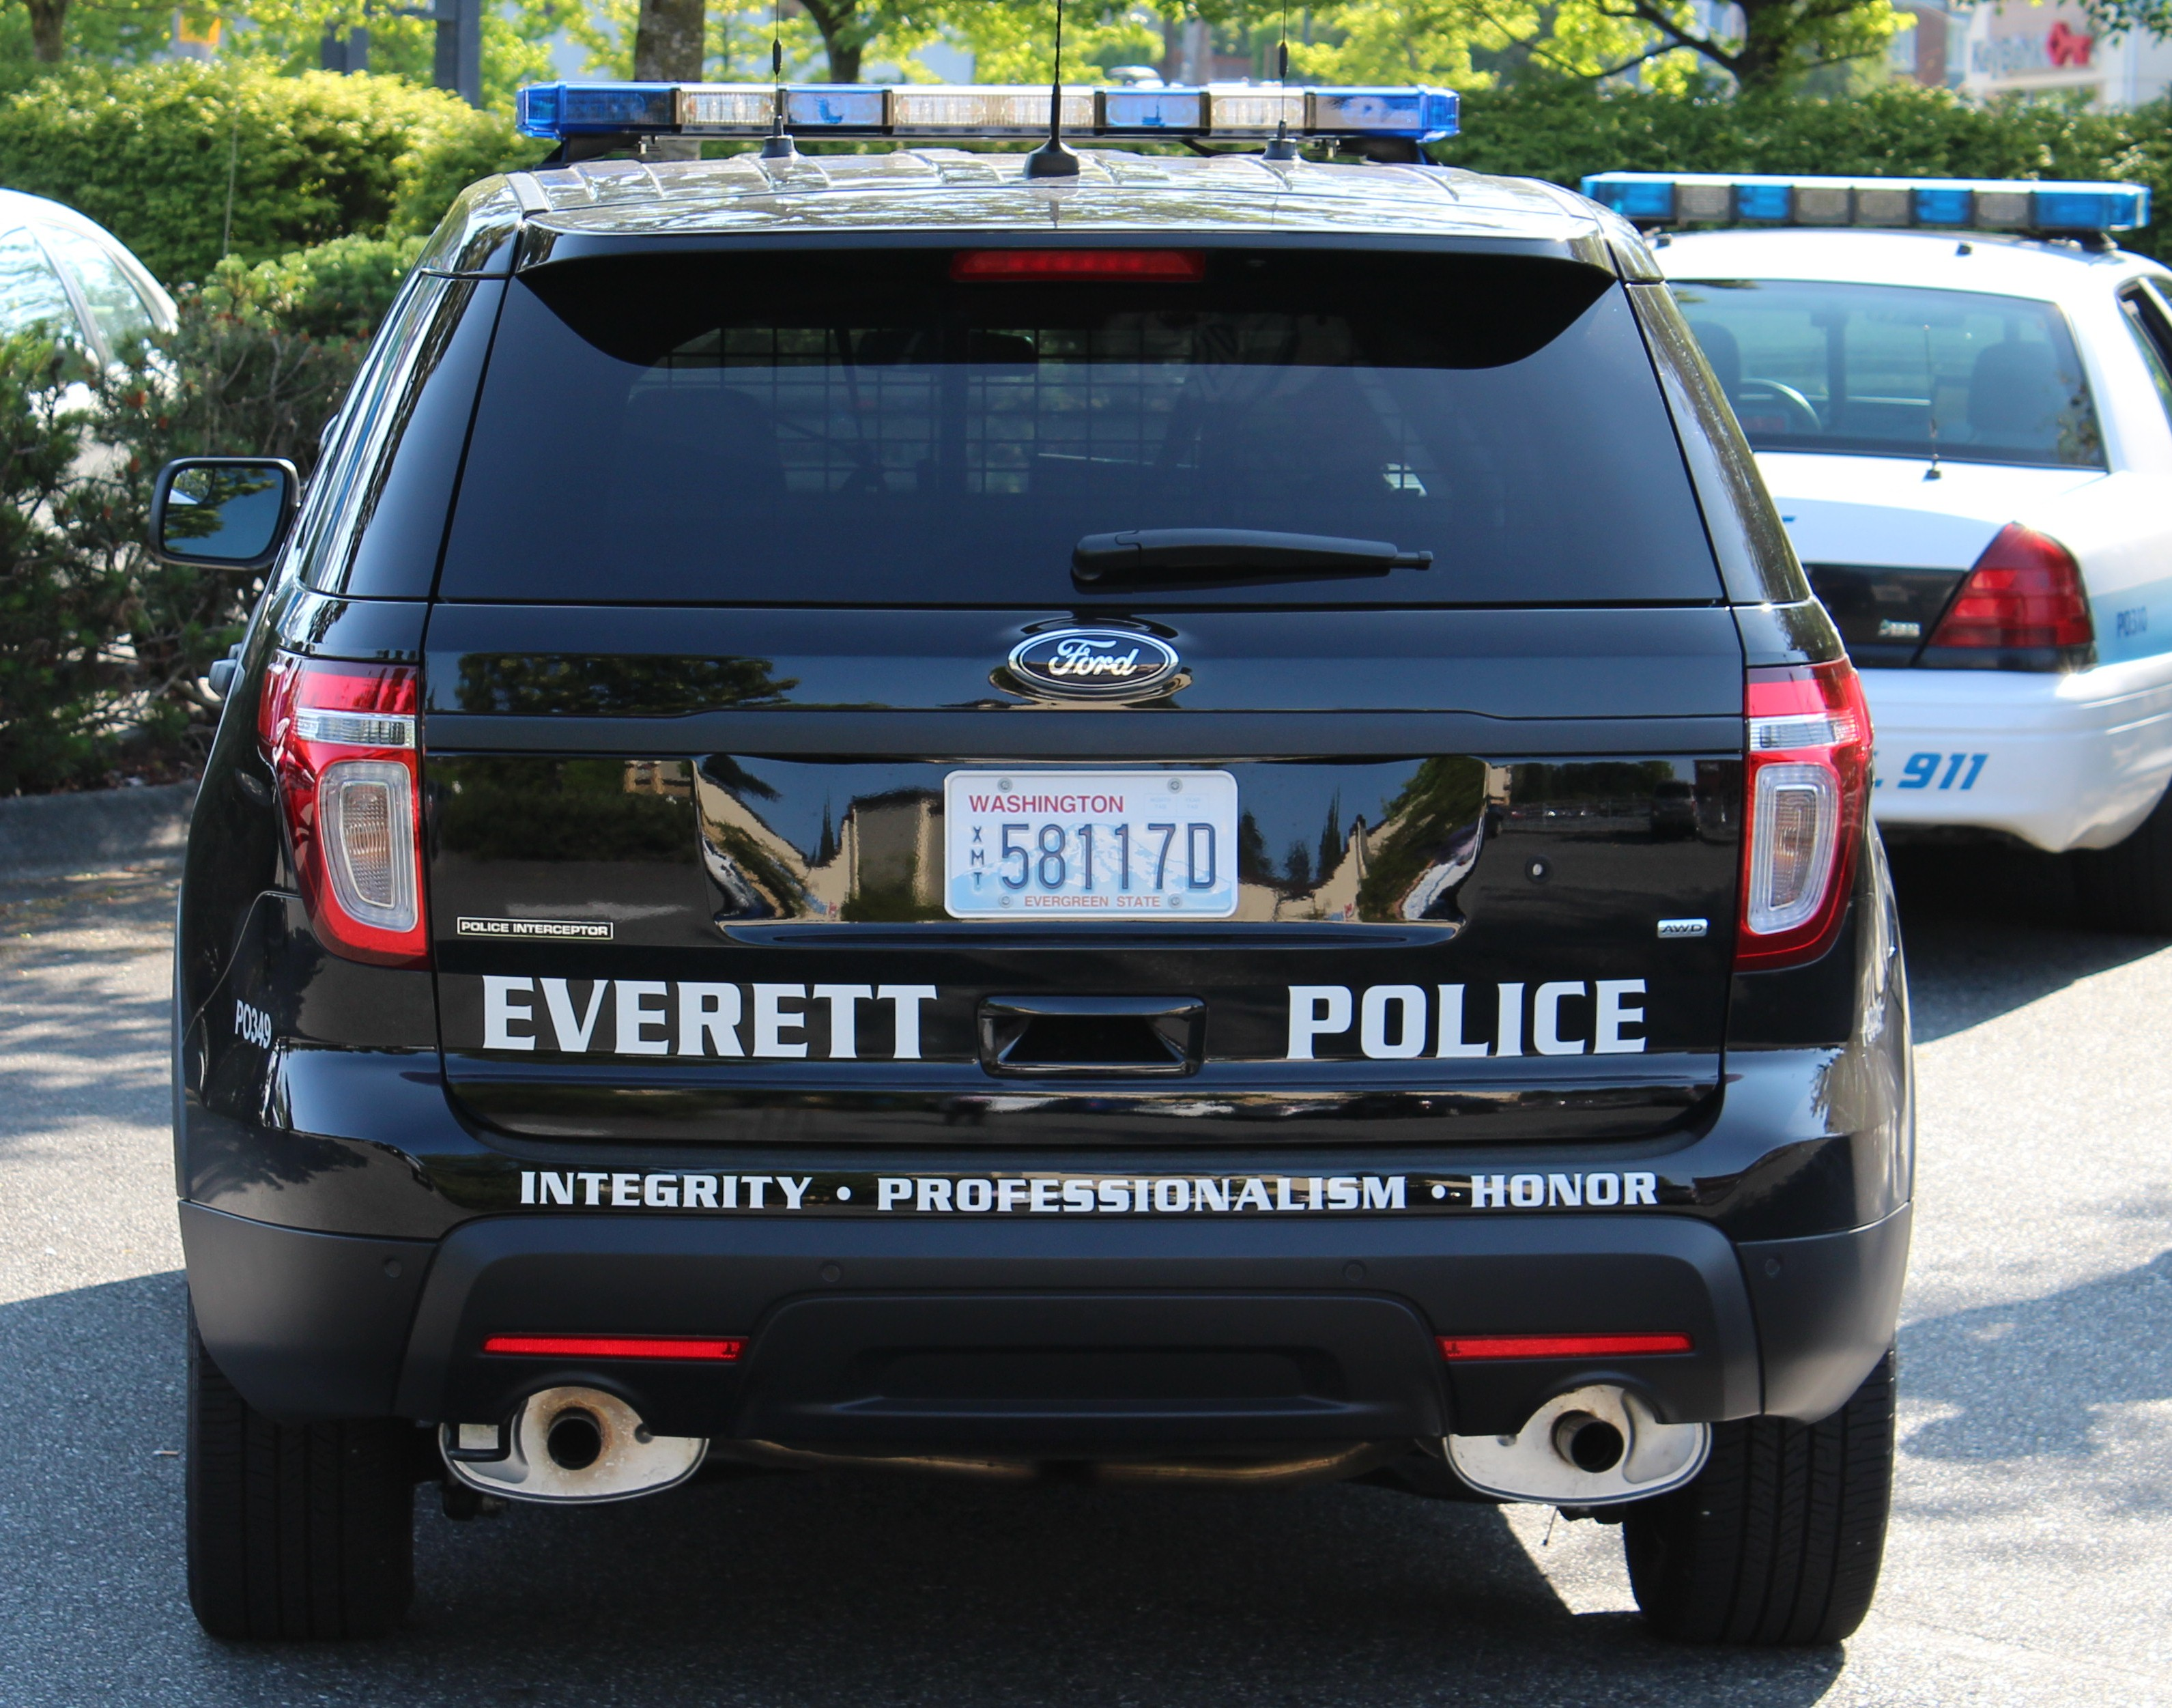 New Everett Police Suv Rear View